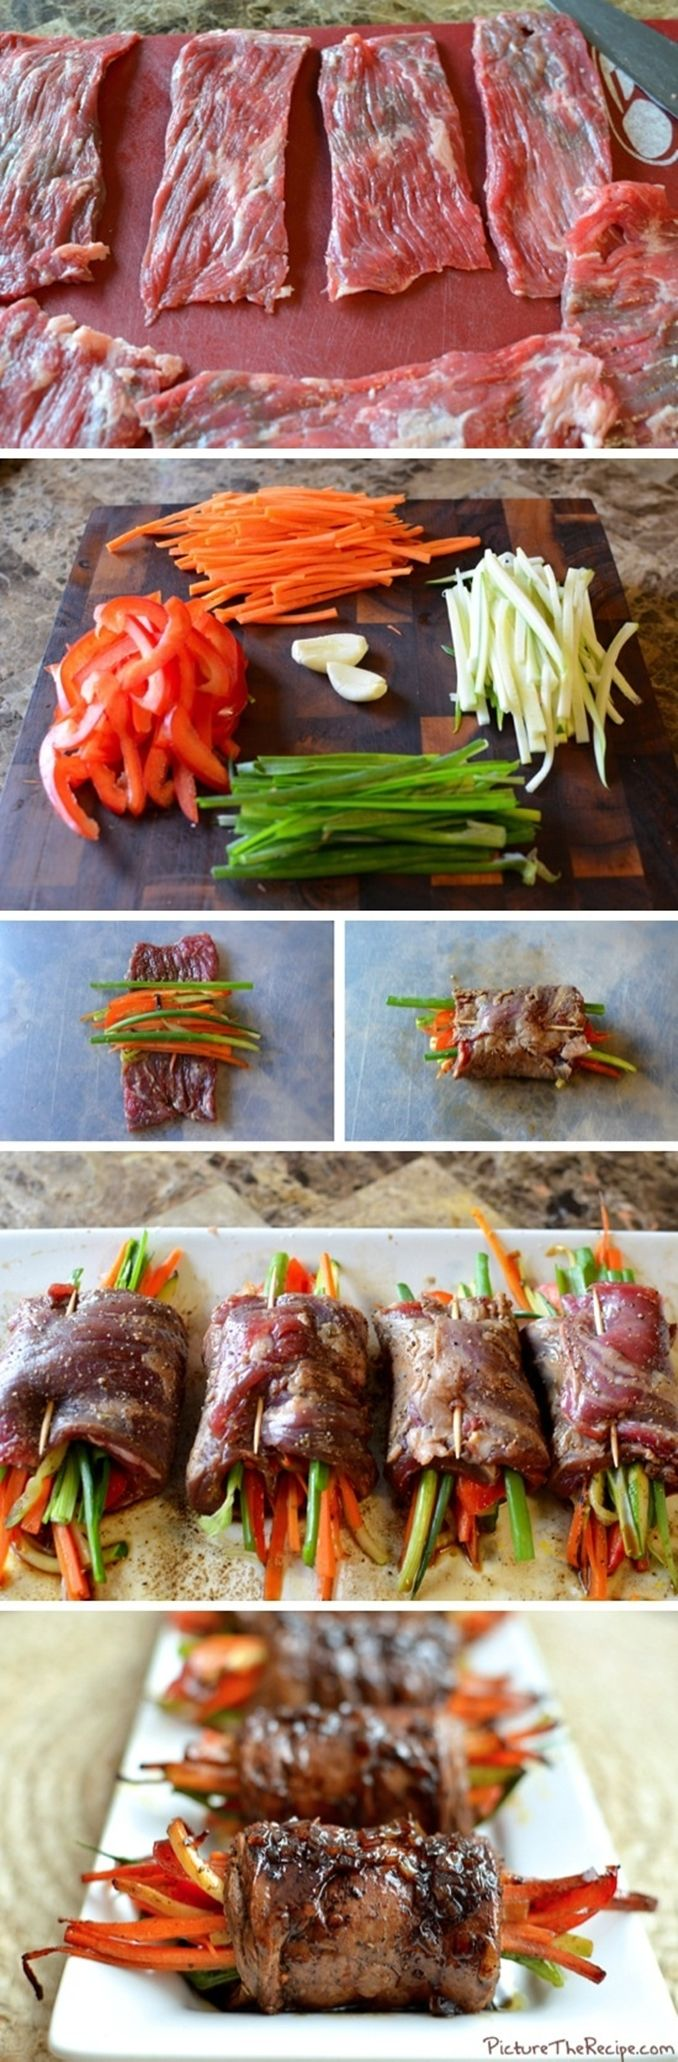 Balsamic Glazed Steak Rolls - I used the picture as inspiration and made these using Caribbean jerk marinade with onions, red & yellow bell peppers, carrots and zucchini. So delicious!